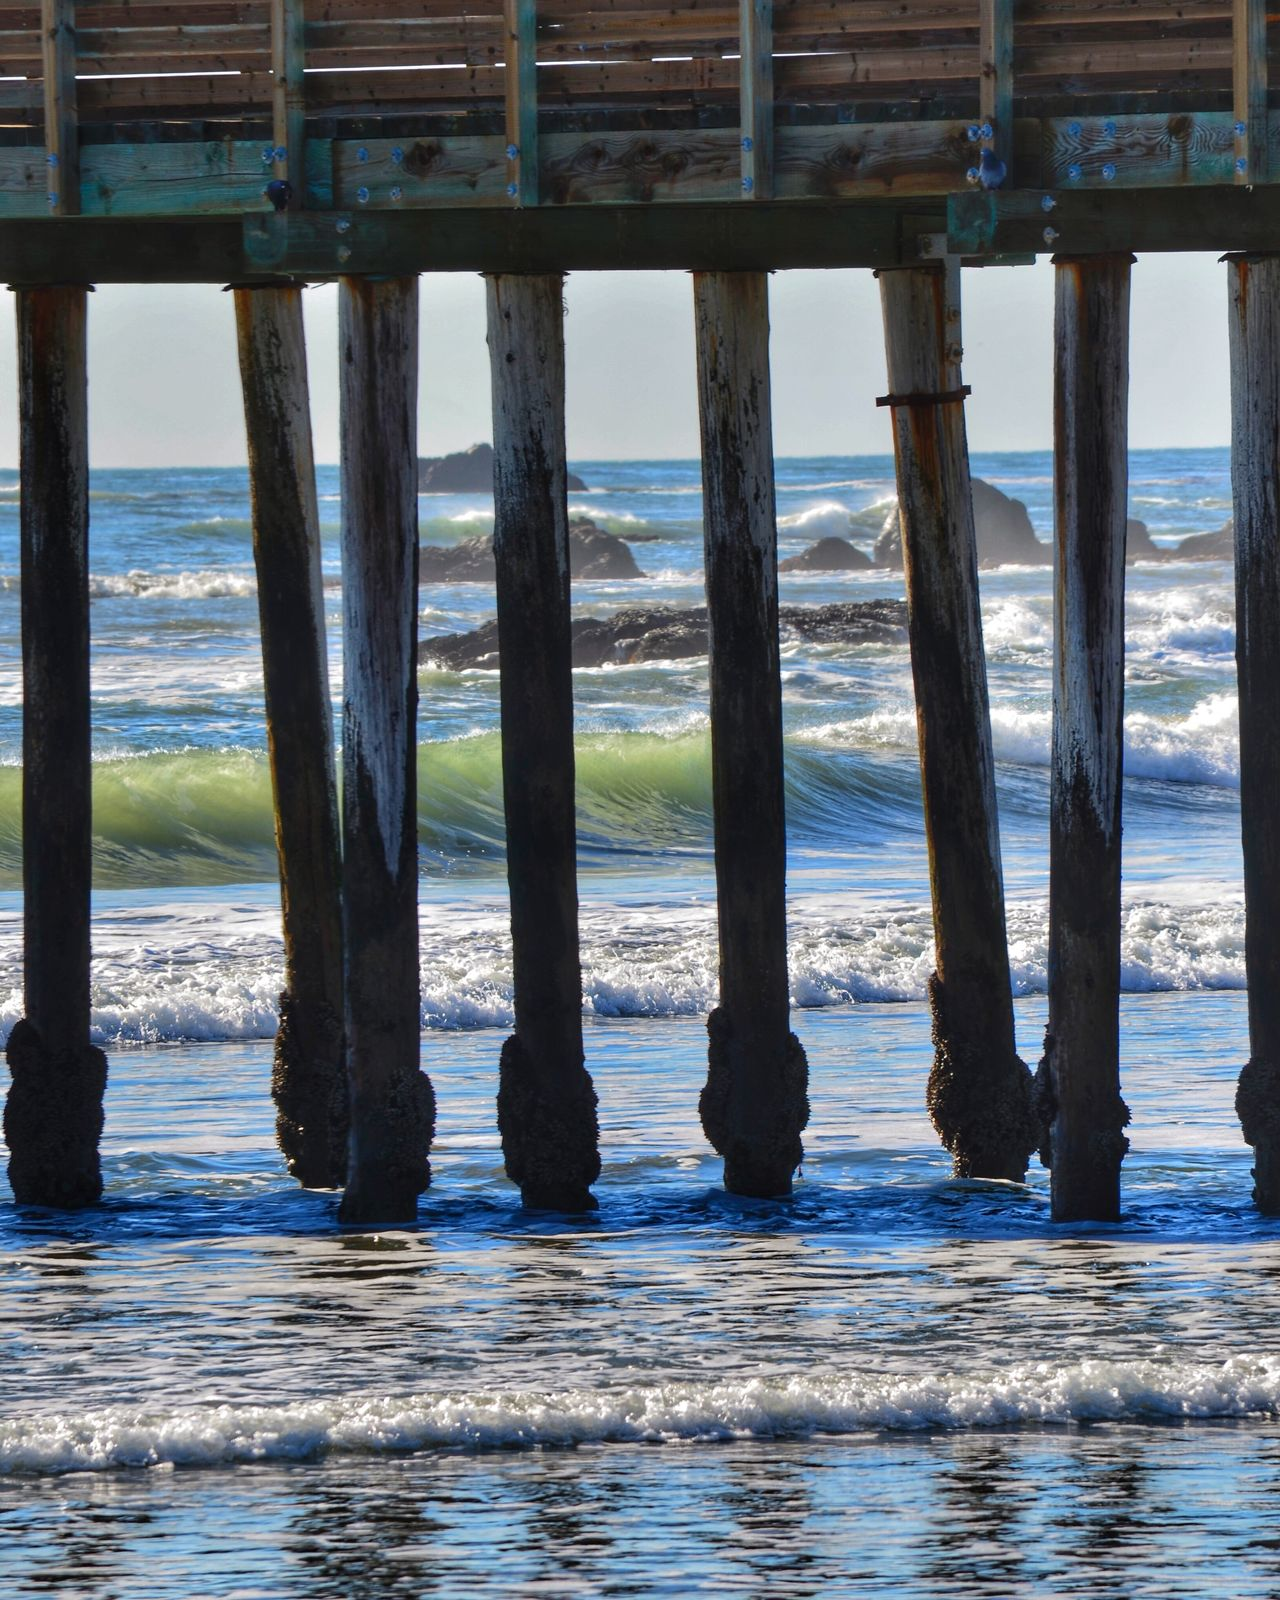 Local spot... Water Sea Pier Tranquil Scene Sky Beach Wood - Material Nature Day Tranquility Architectural Column Beauty In Nature Scenics No People Outdoors Underneath Waterfront California My Year My View EyeEm Gallery Nature California Coast Architecture Built Structure Horizon Over Water